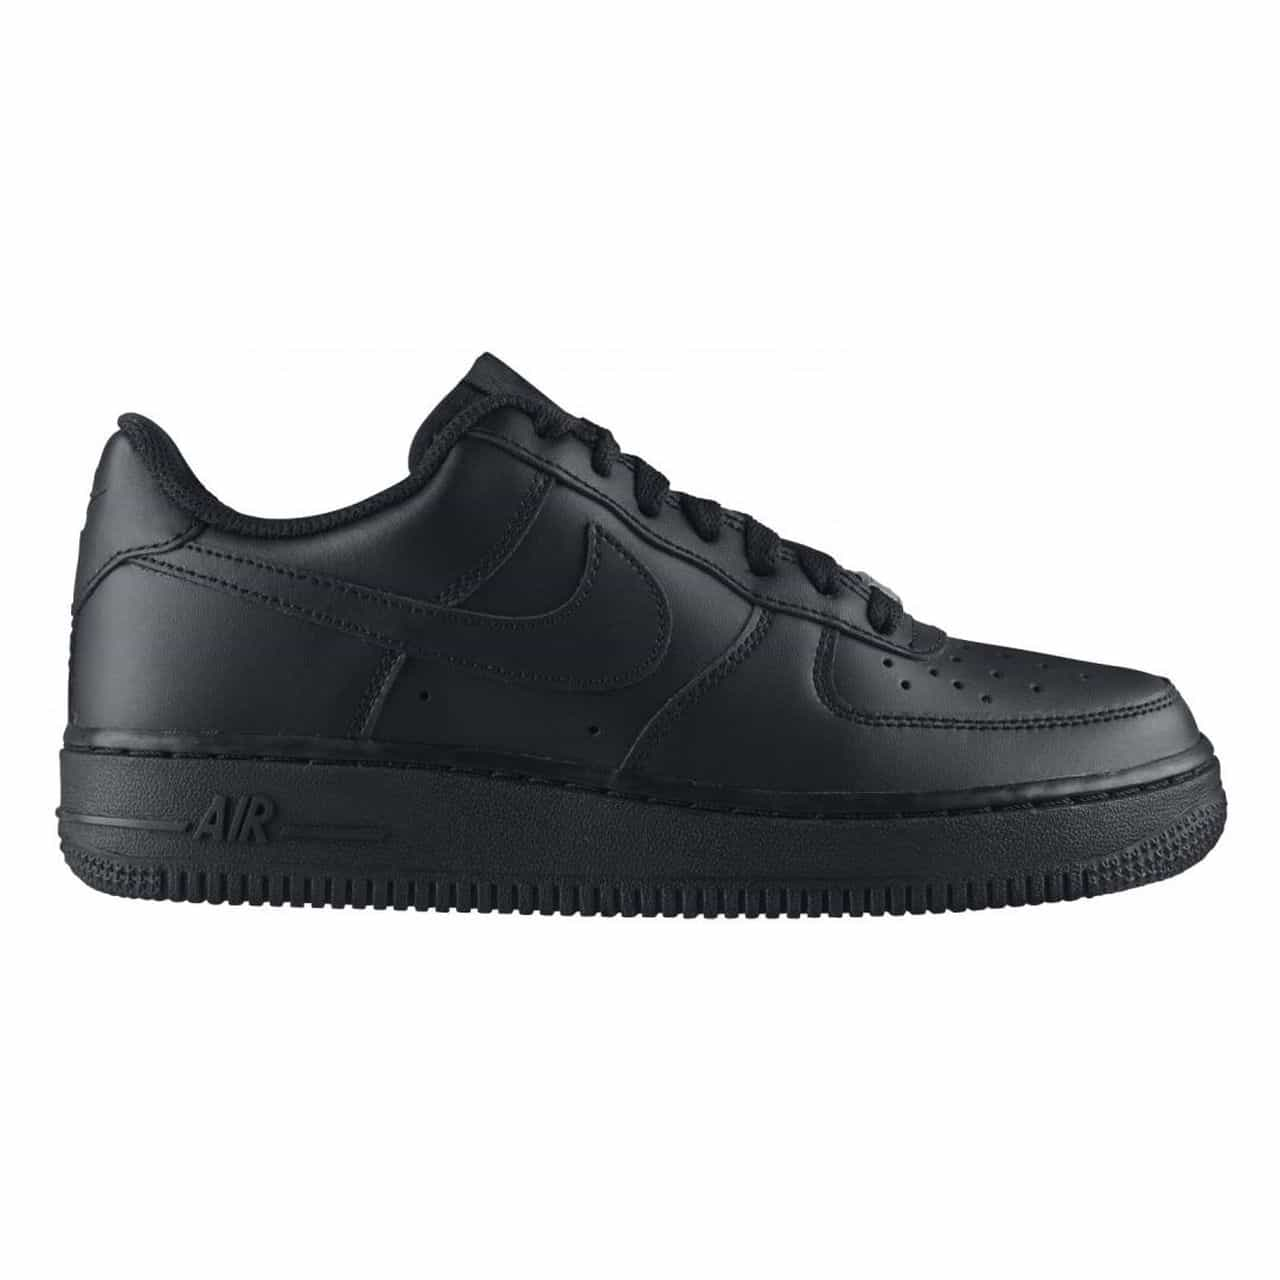 ADIDASI ORIGINALI NIKE AIR FORCE 1 (GS) - 314192 009